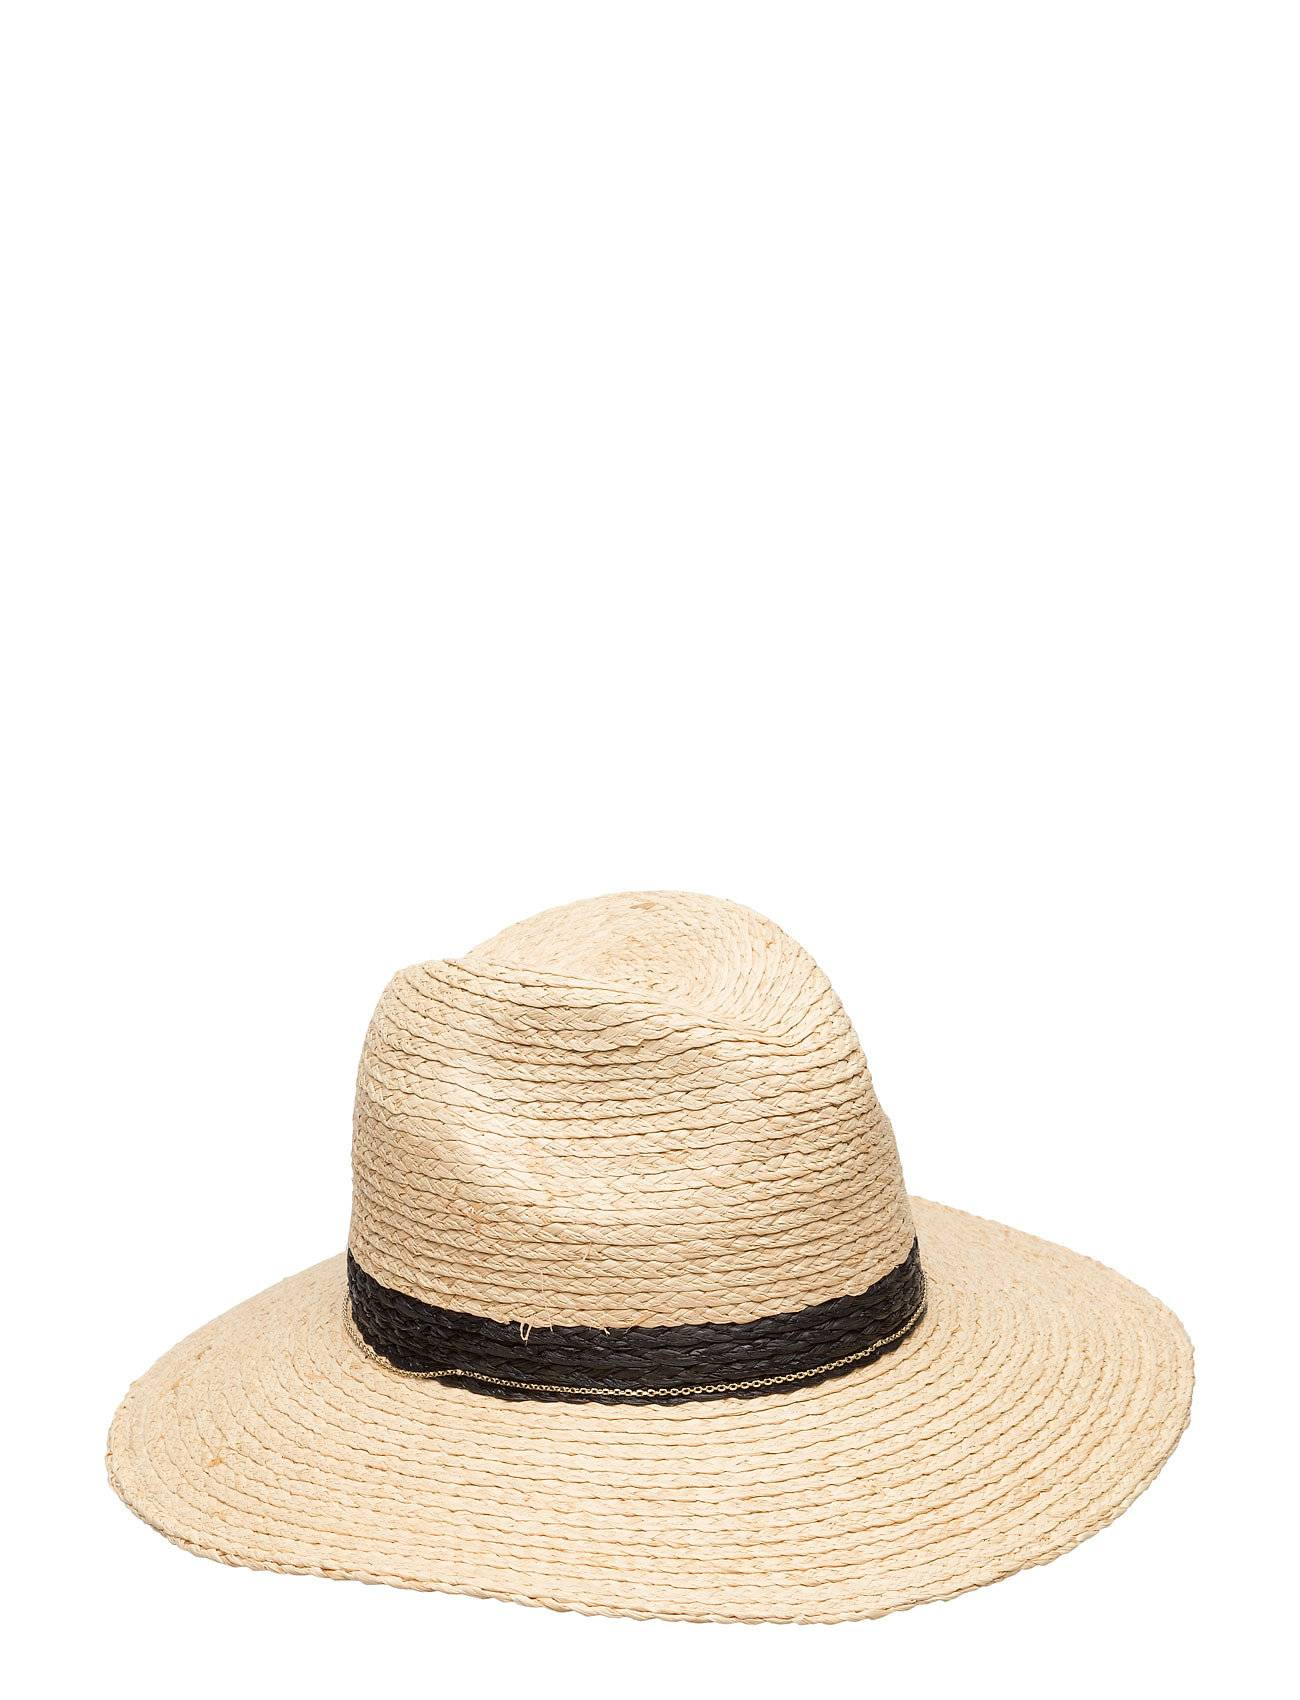 Seafolly Coastal Fedora